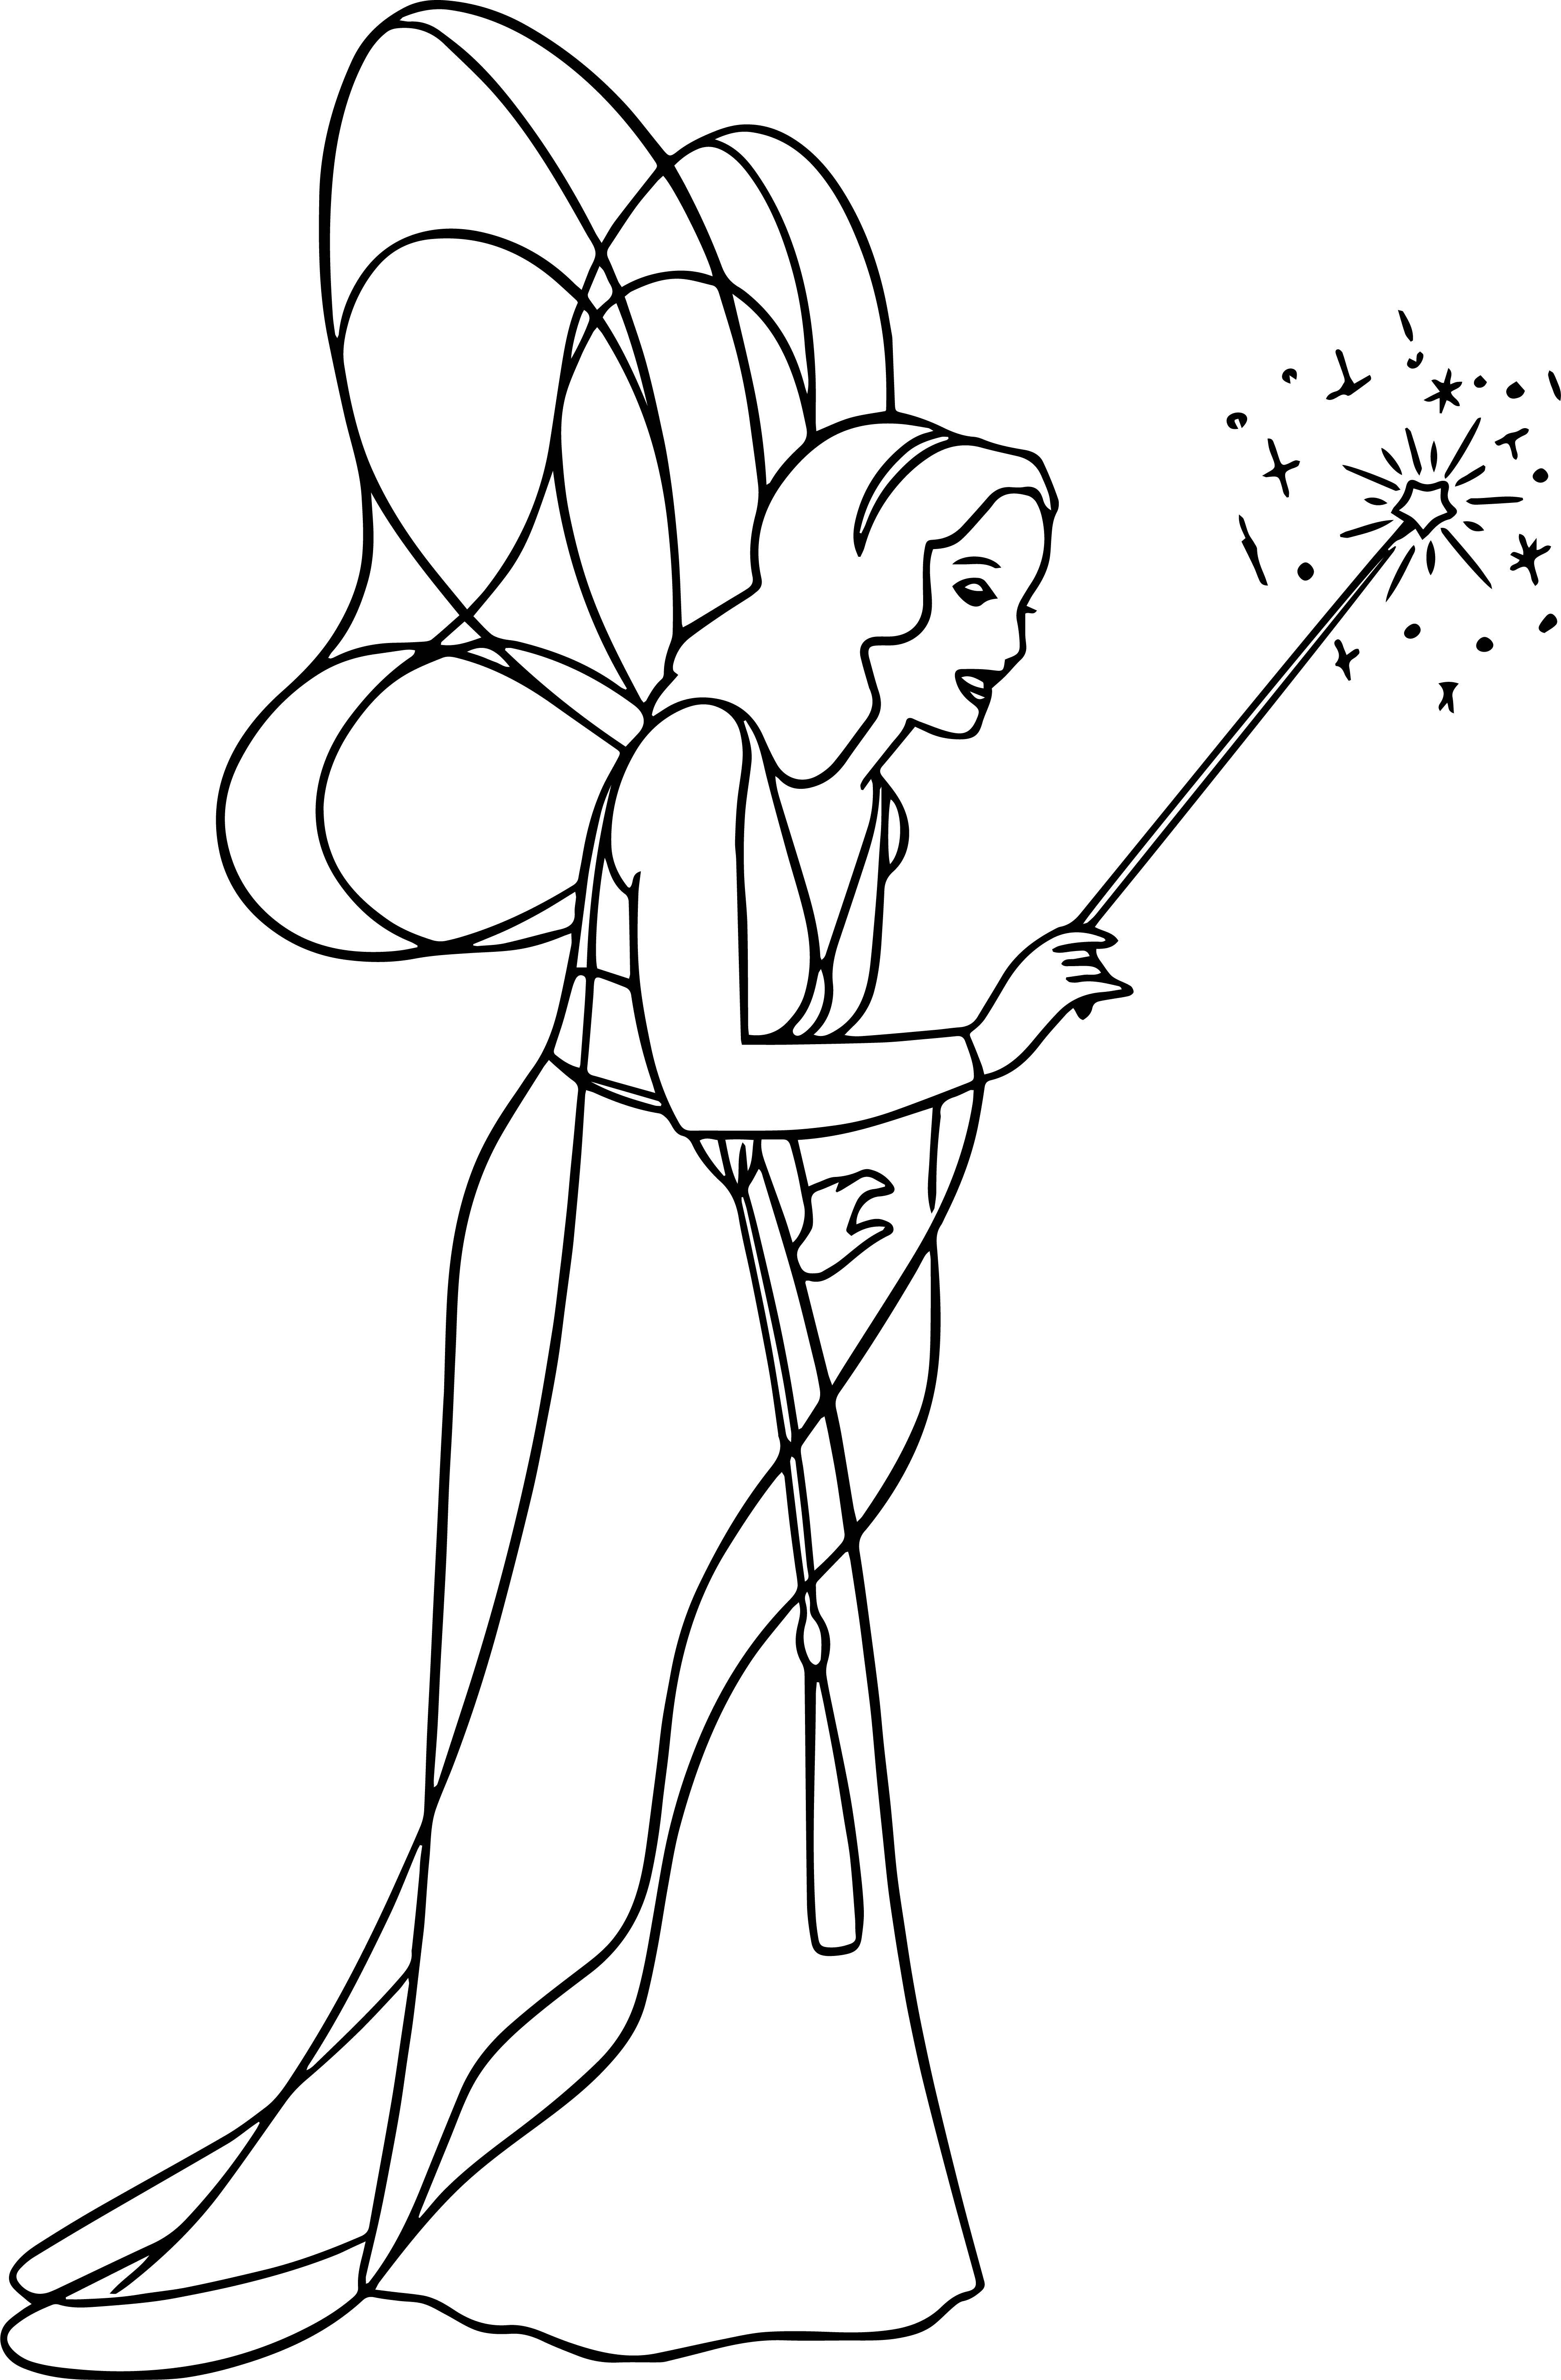 Pinocchio Blue Fairy Wand Coloring Pages